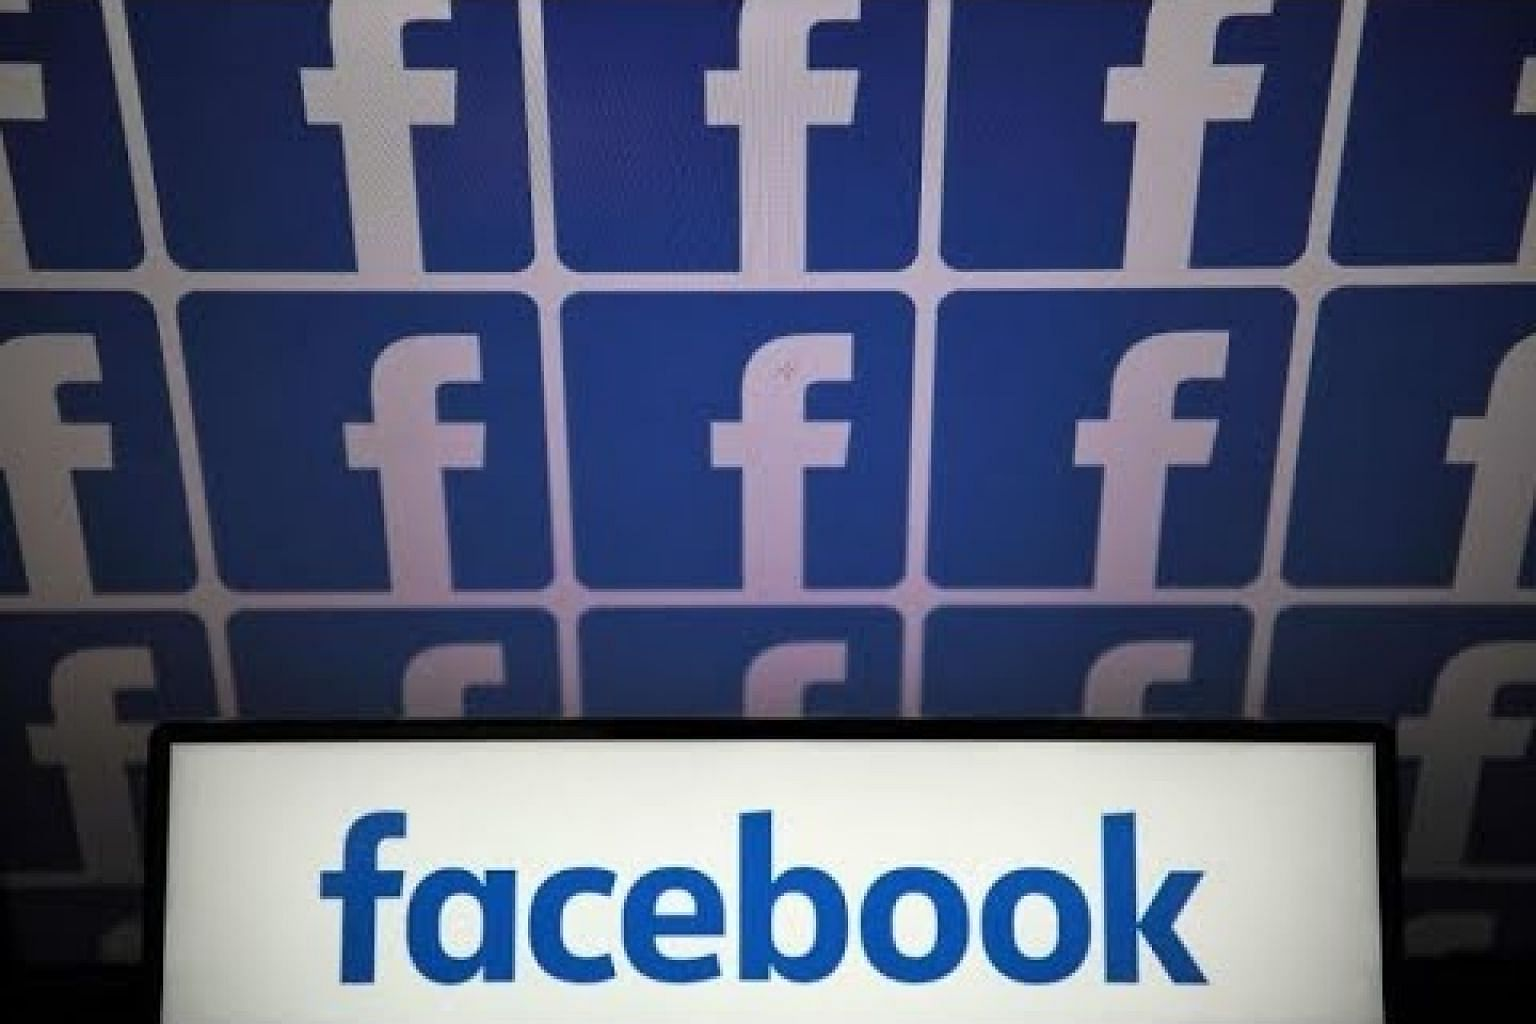 Facebook can be ordered to remove content